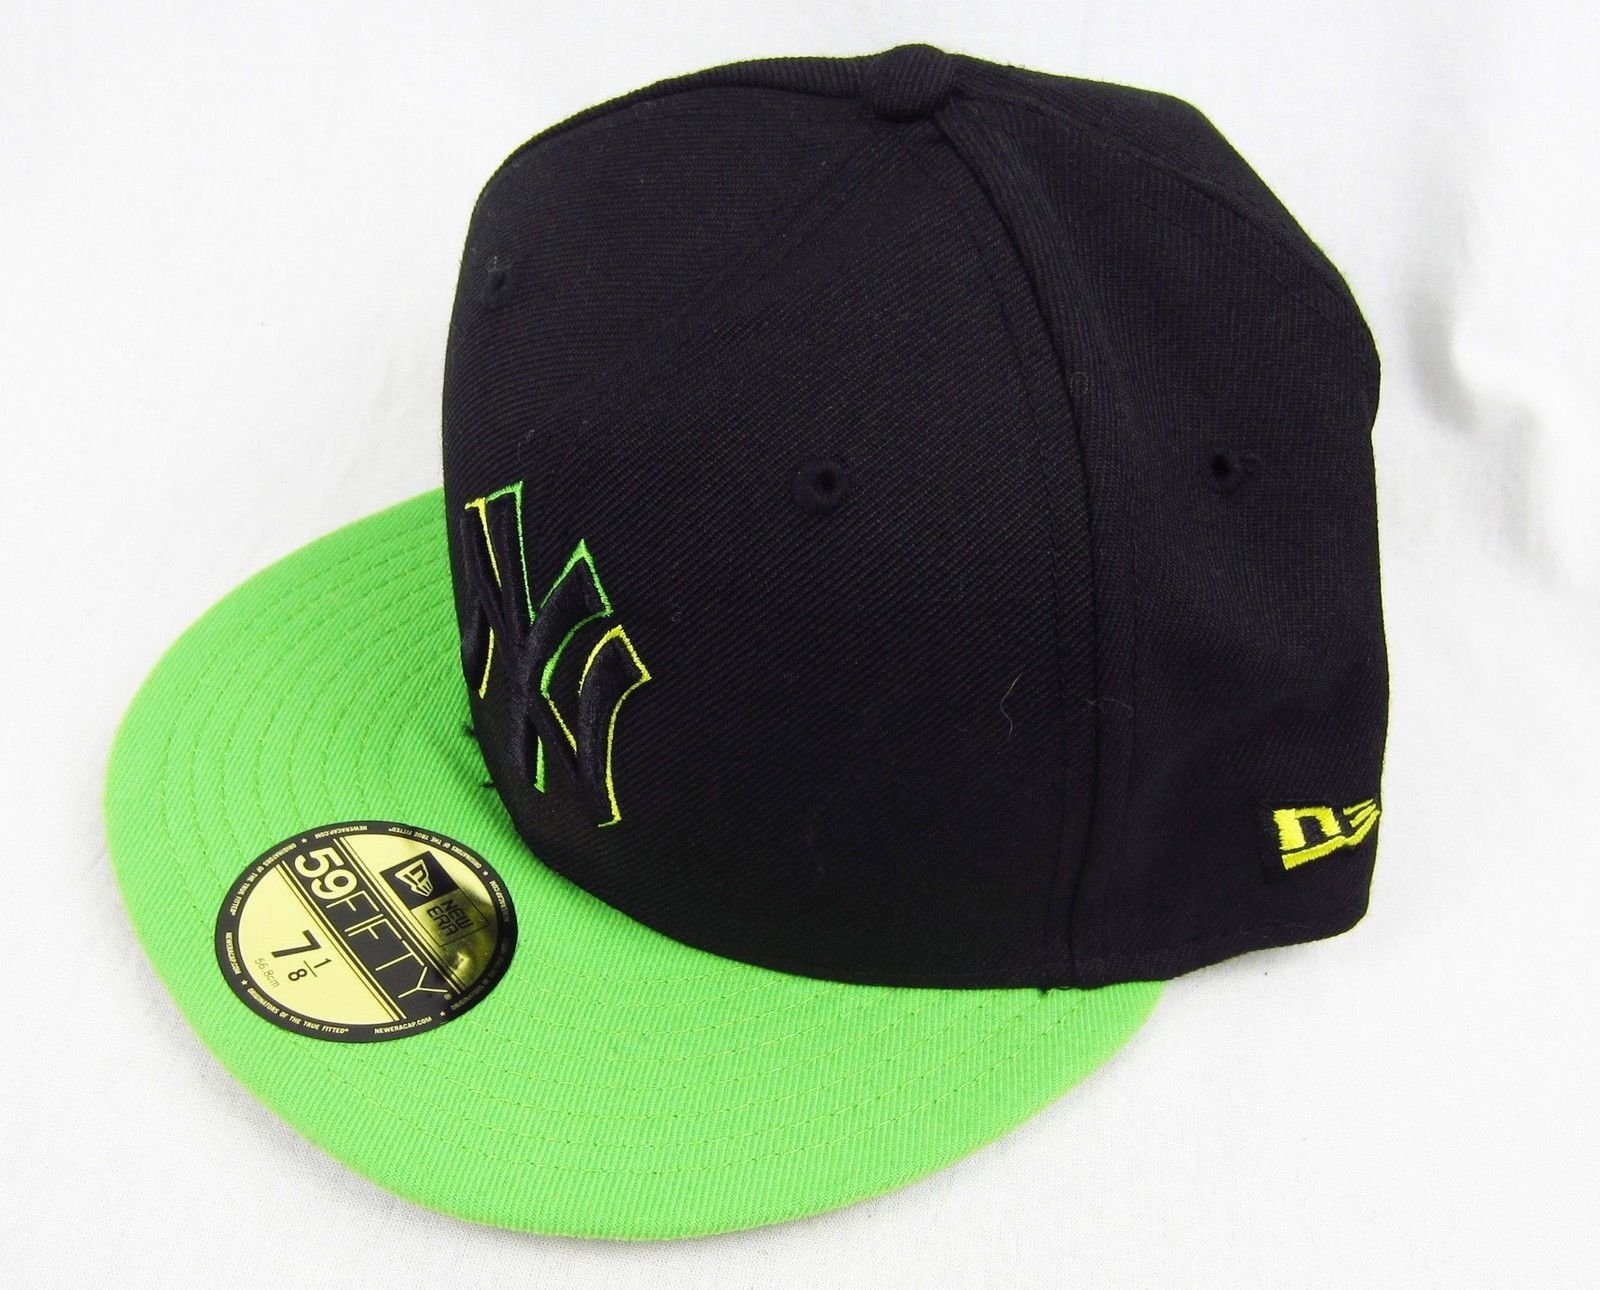 New Era 59Fifty 7 1 8 New York Yankees Hat Black Neon 56.8cm Lana Polyester  MLB 470af13439d